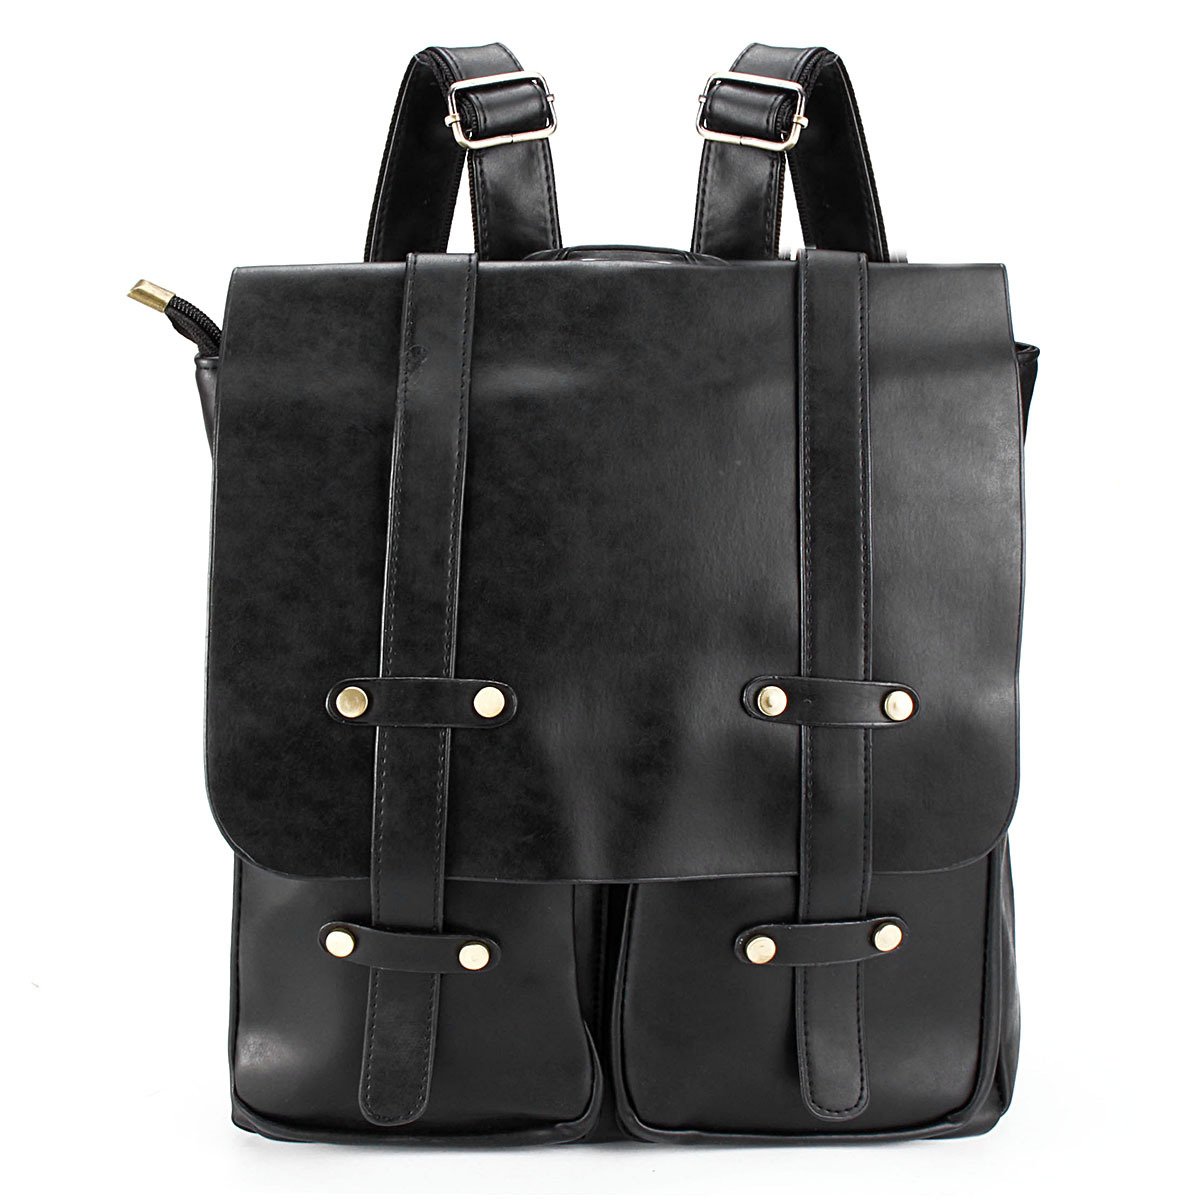 damen herren rucksack leder schulrucksack vintage schultertasche handtasche mode ebay. Black Bedroom Furniture Sets. Home Design Ideas